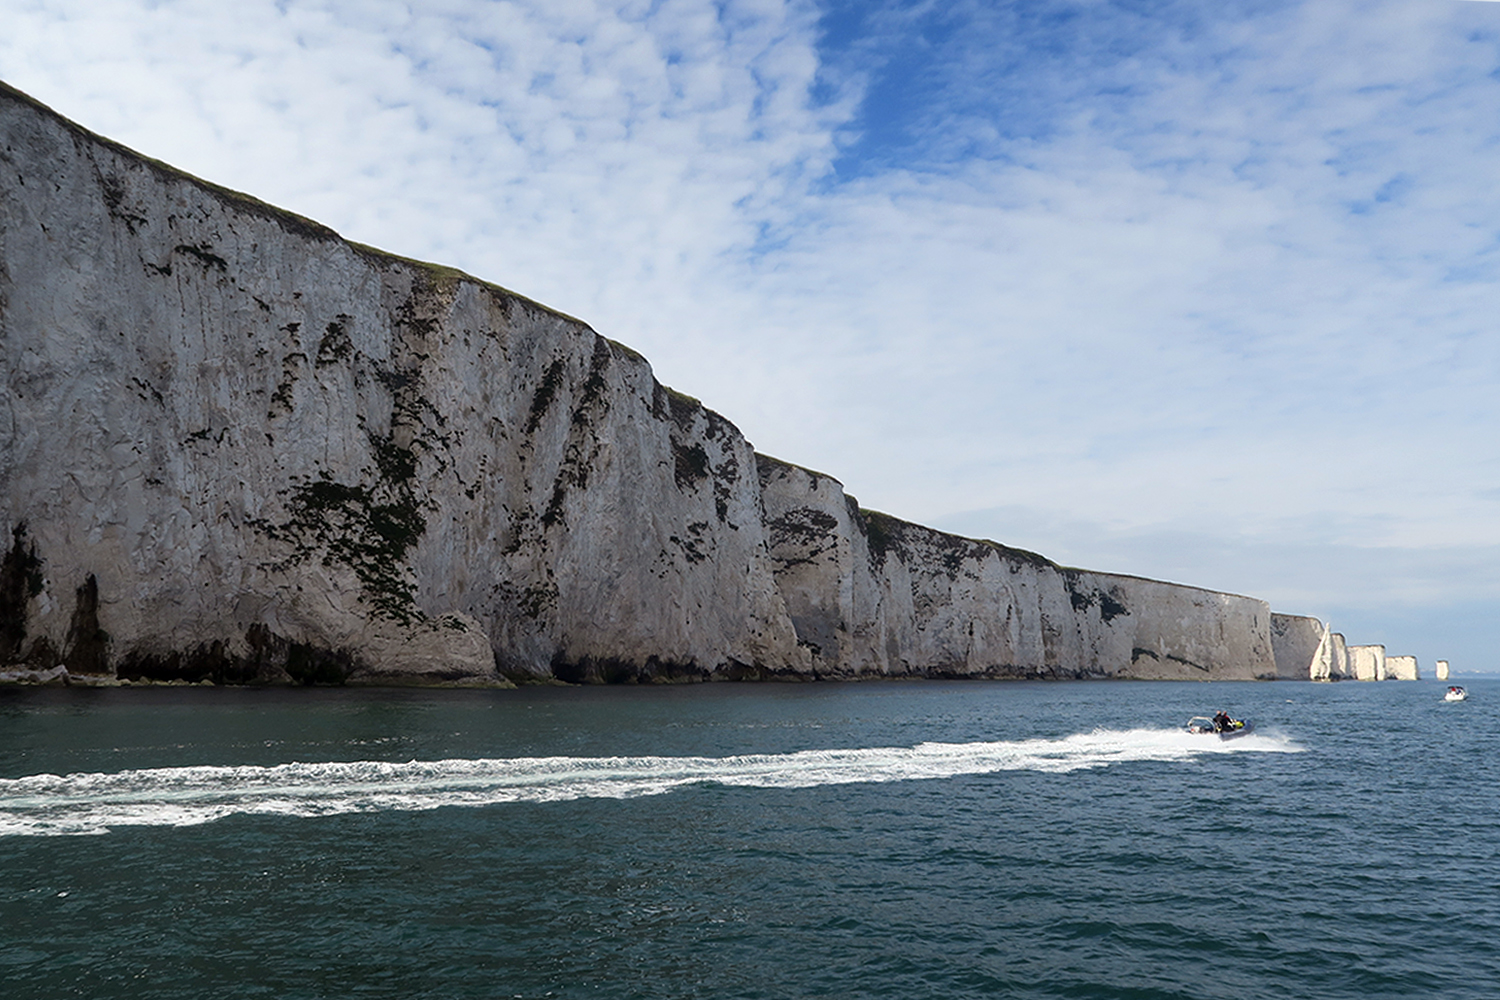 Spending a weekend in Dorset? The following activities are a good overview of what the county has to offer visitors.